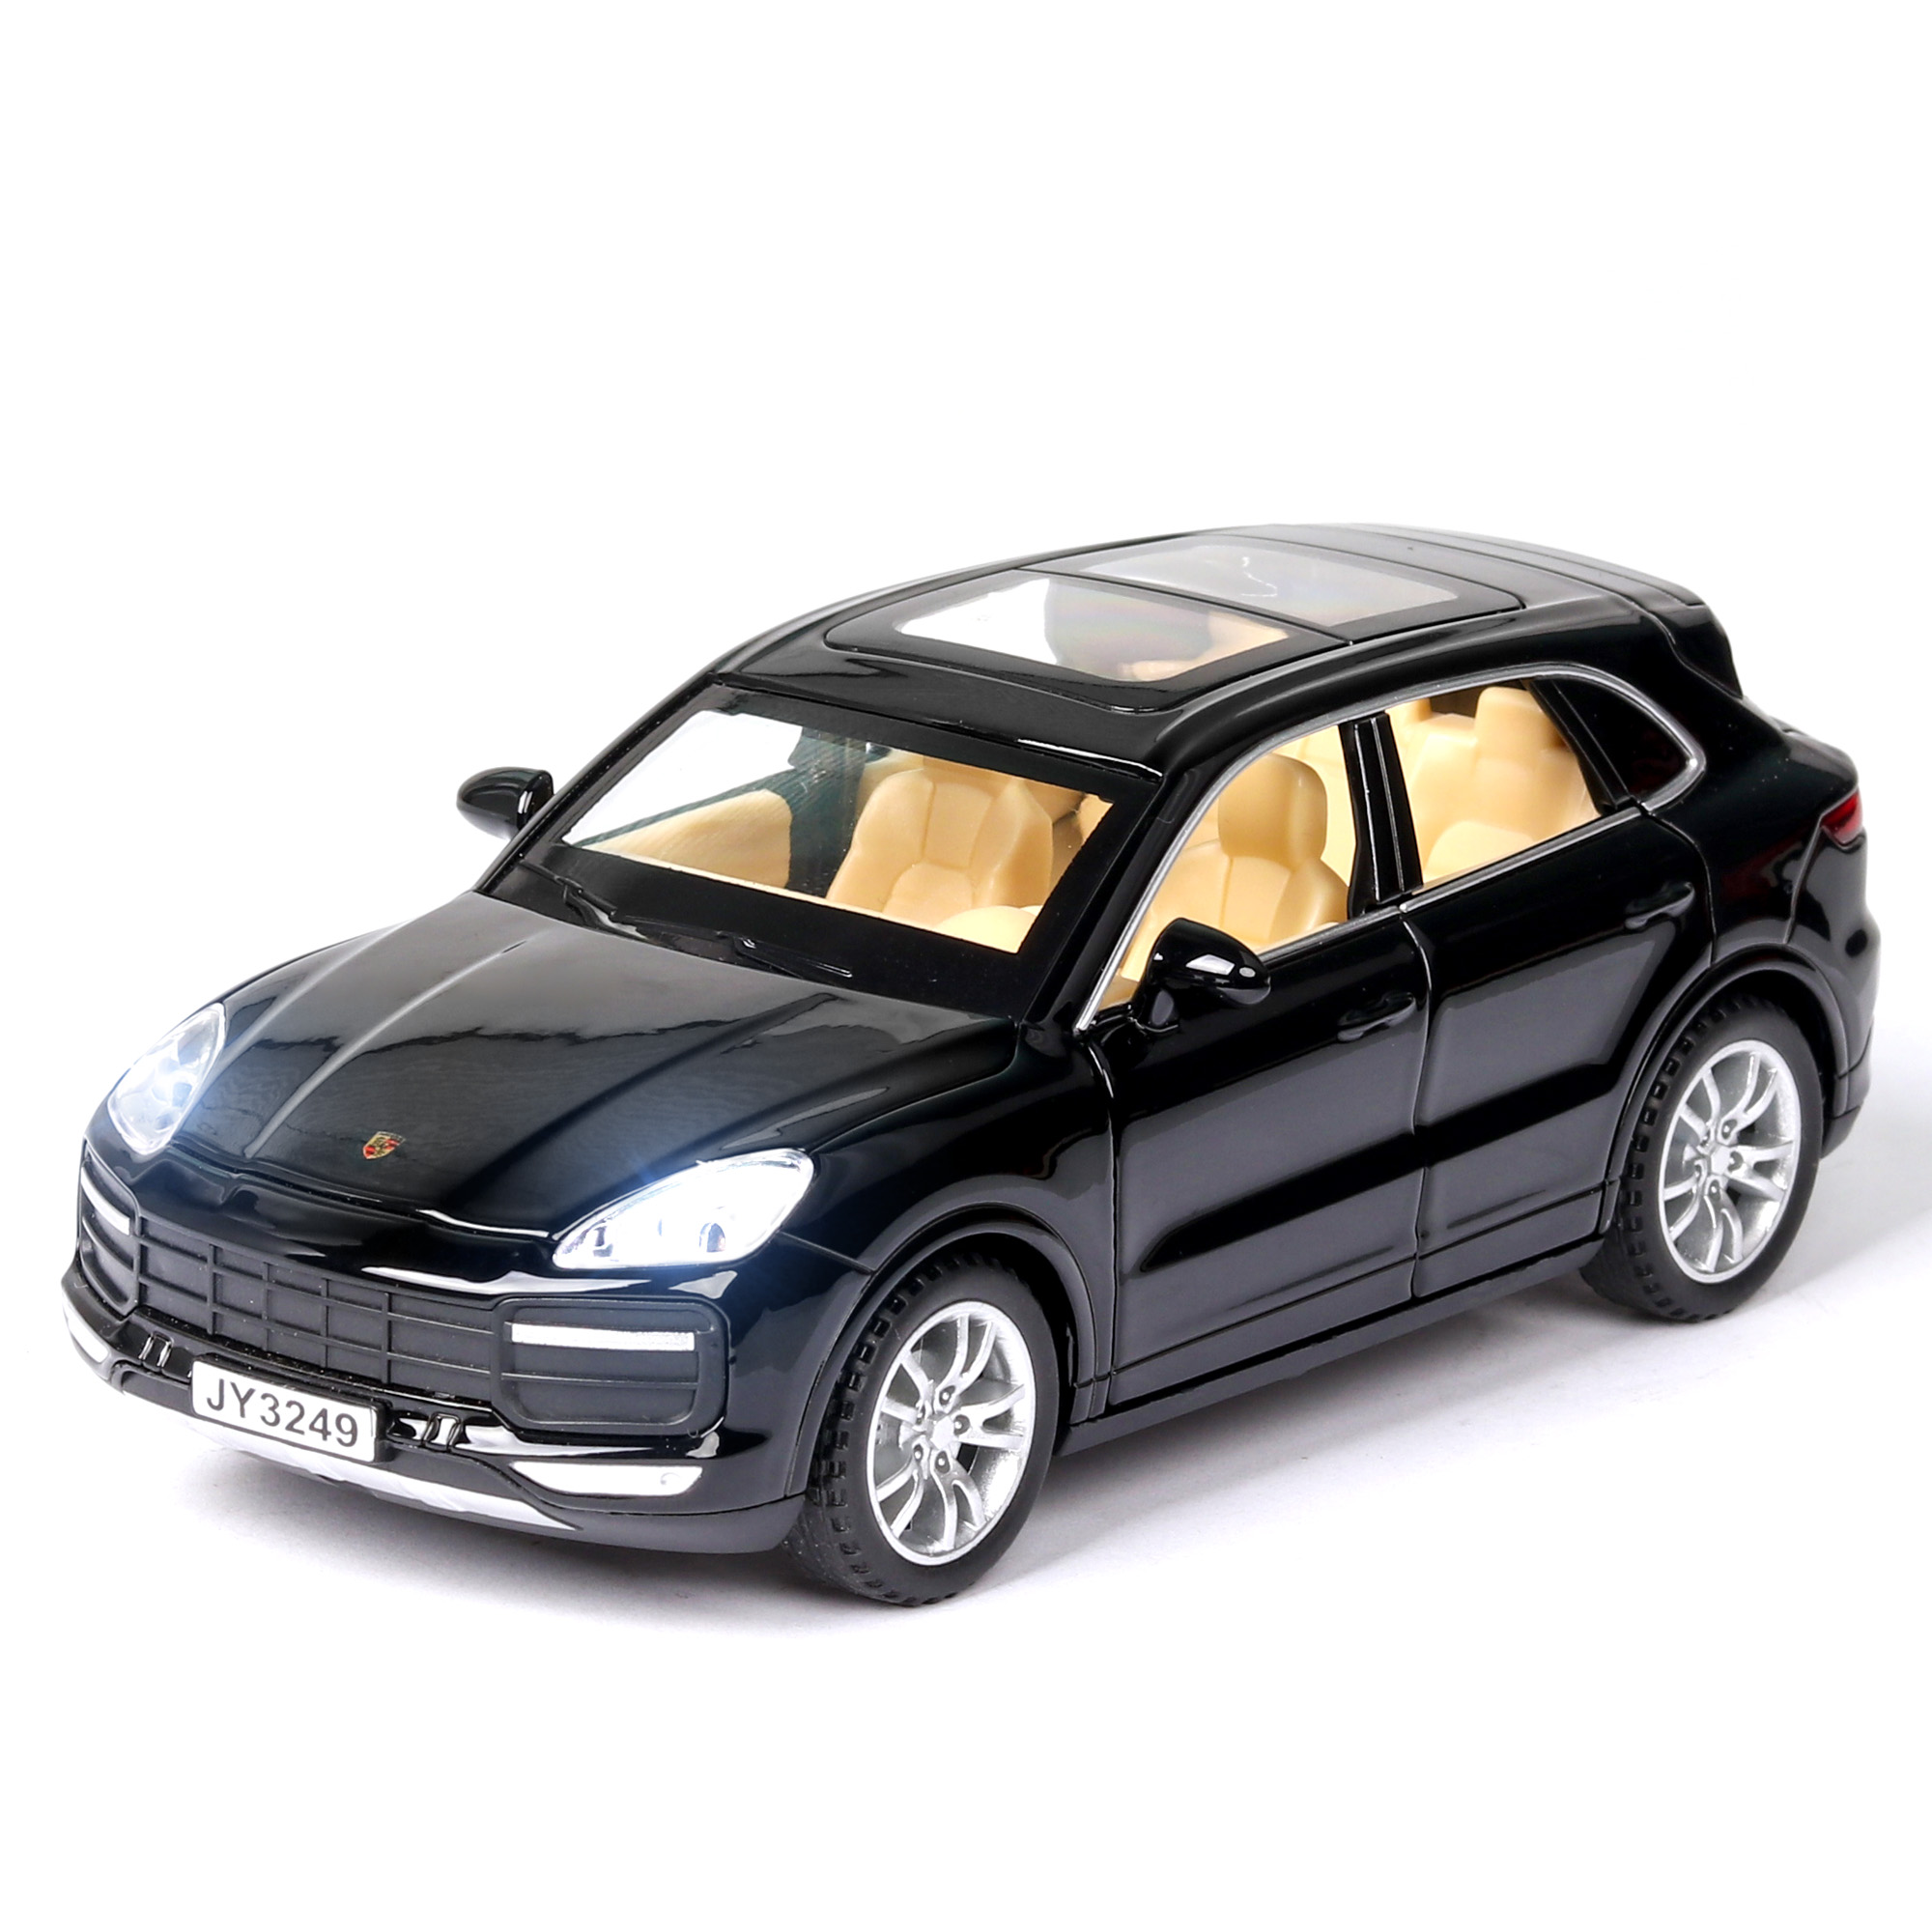 1:32 High Simulation Porsches Cayenne Alloy Car Model Sound And Light 6 Door Metal Pull Back Kids Toys Car For Children Gifts